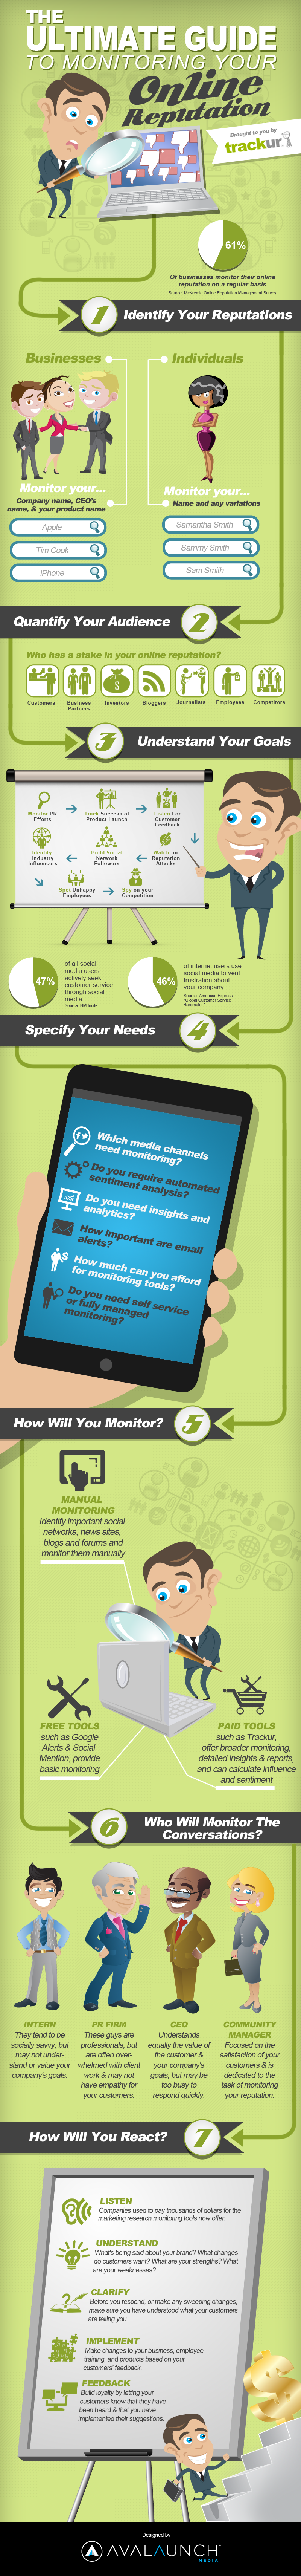 Trackur Infographic1 The Ultimate Guide to Monitoring Your Online Reputation